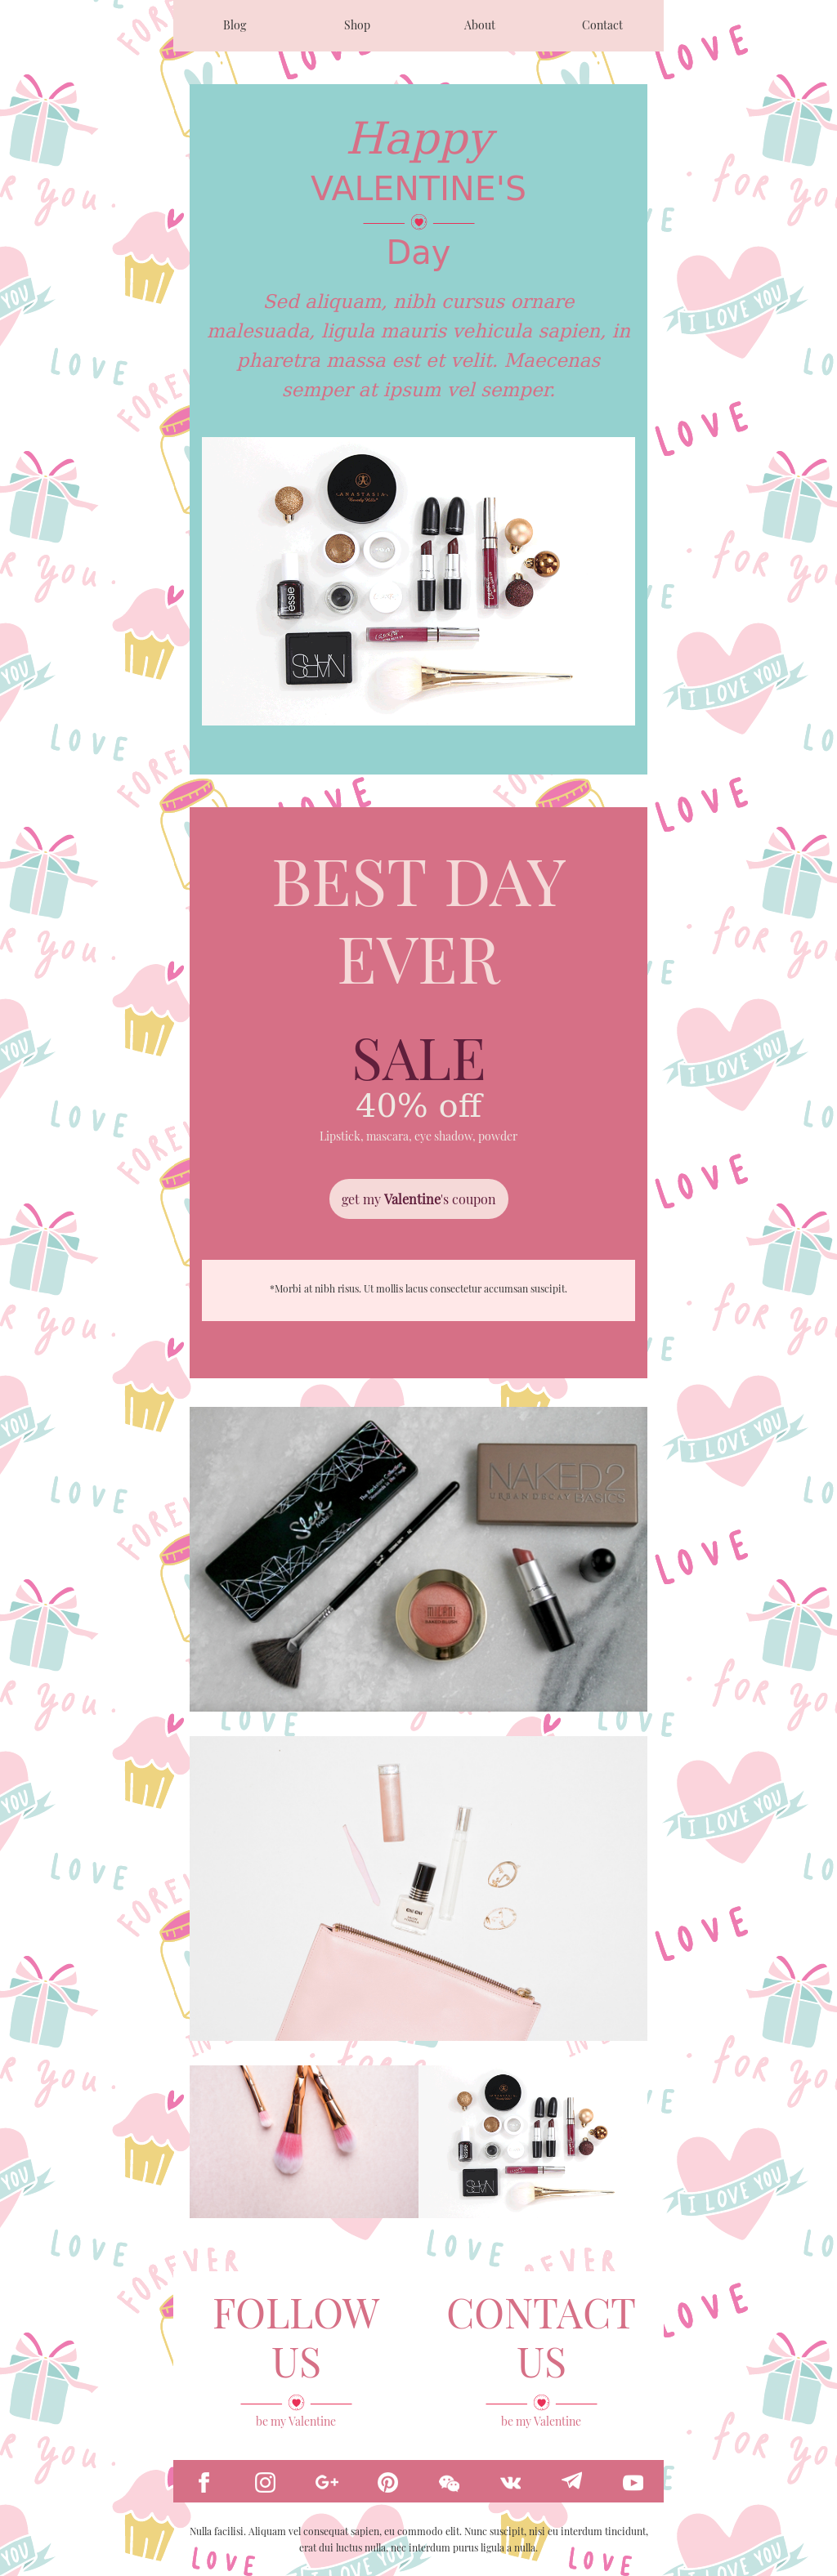 Ecommerce Valentine's Day Email Newsletter